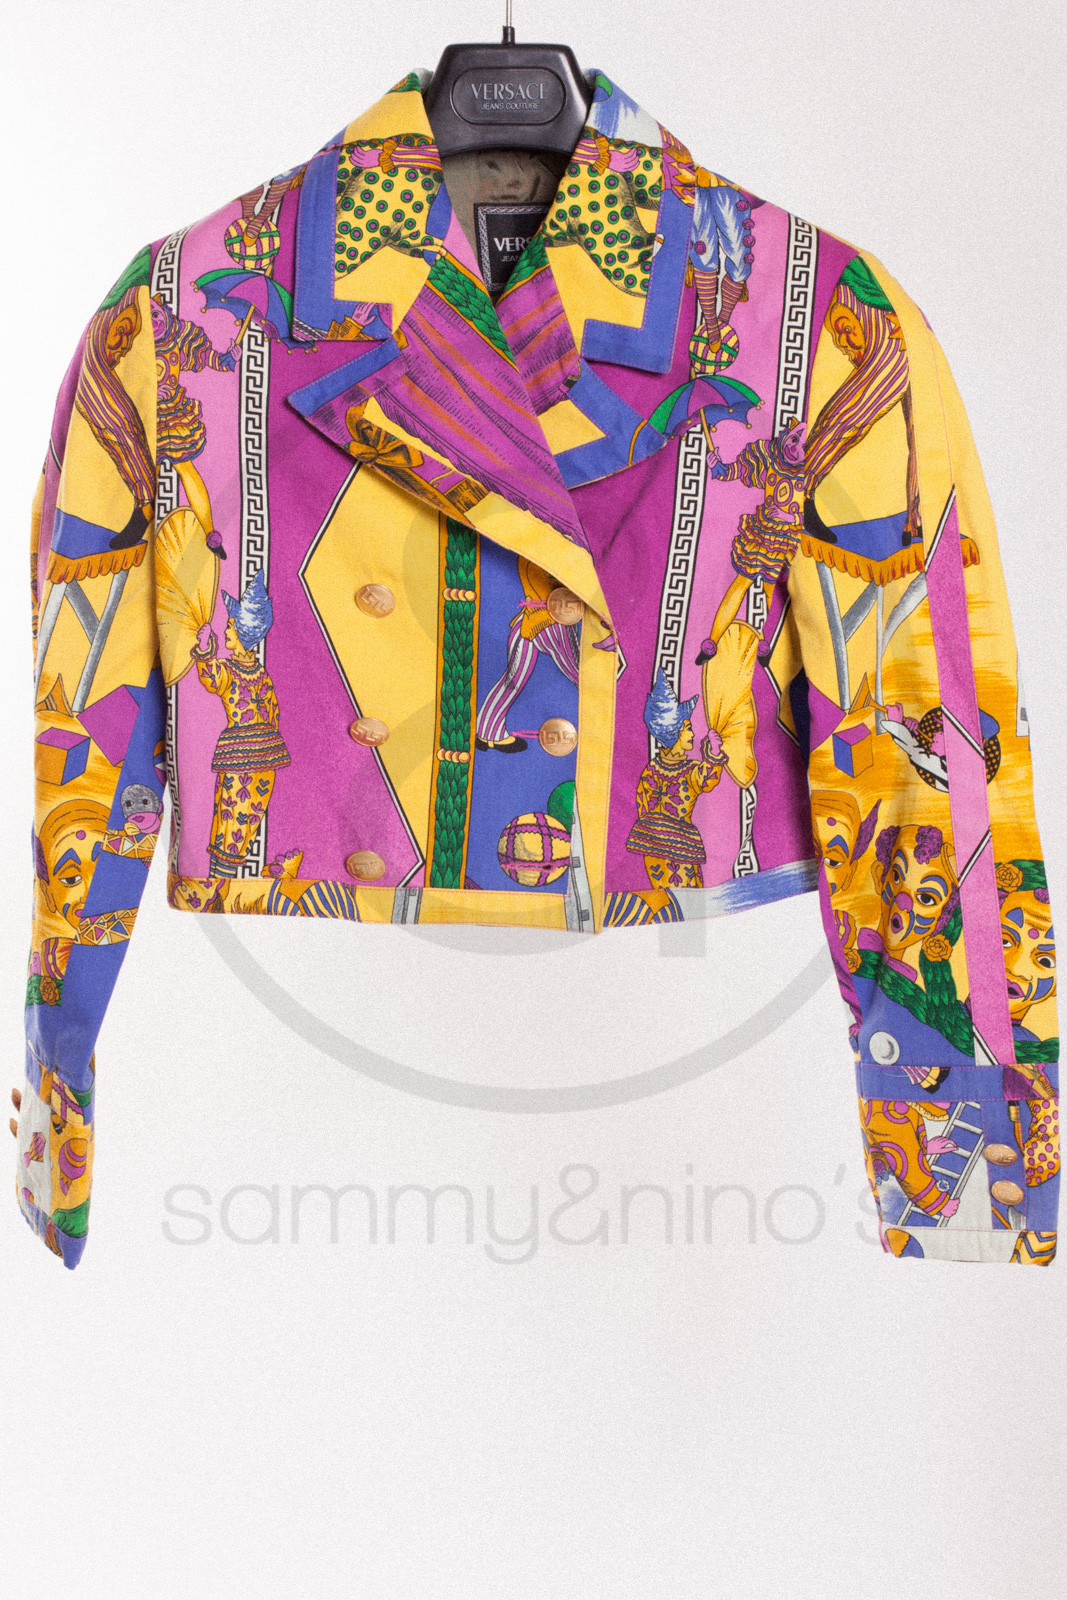 Versace Jeans Couture Jacket Sammy Amp Nino S Store